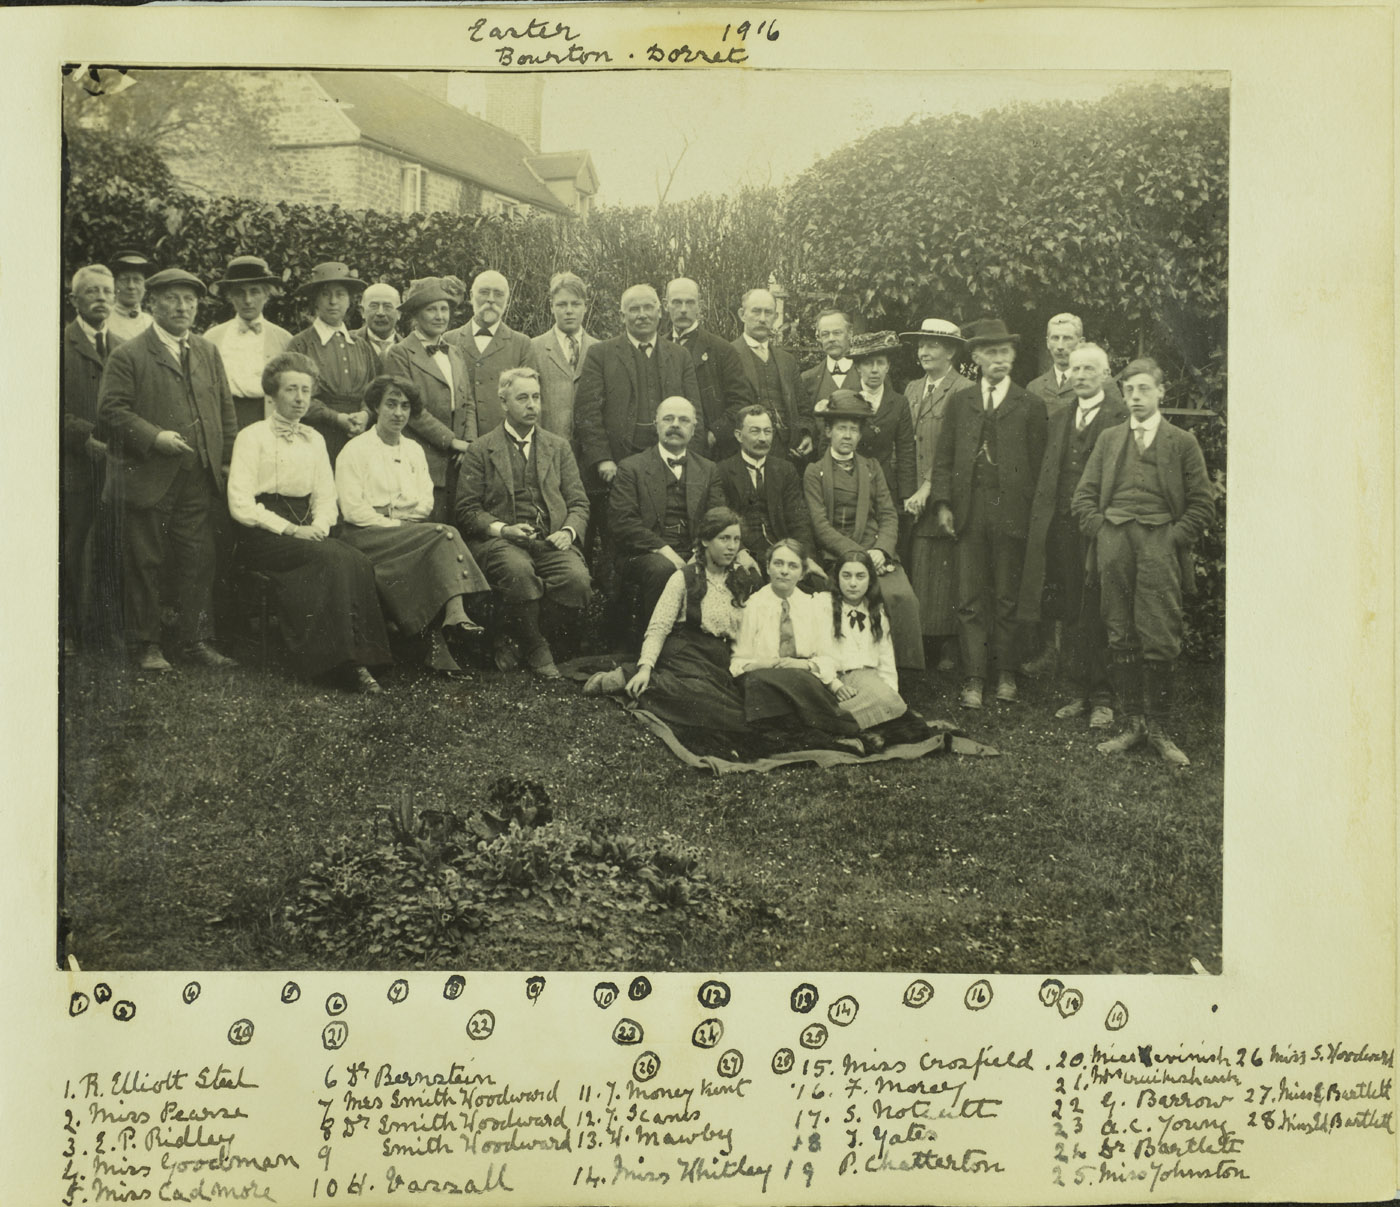 Geologists' Association field trip to Dorset, Easter 1916.